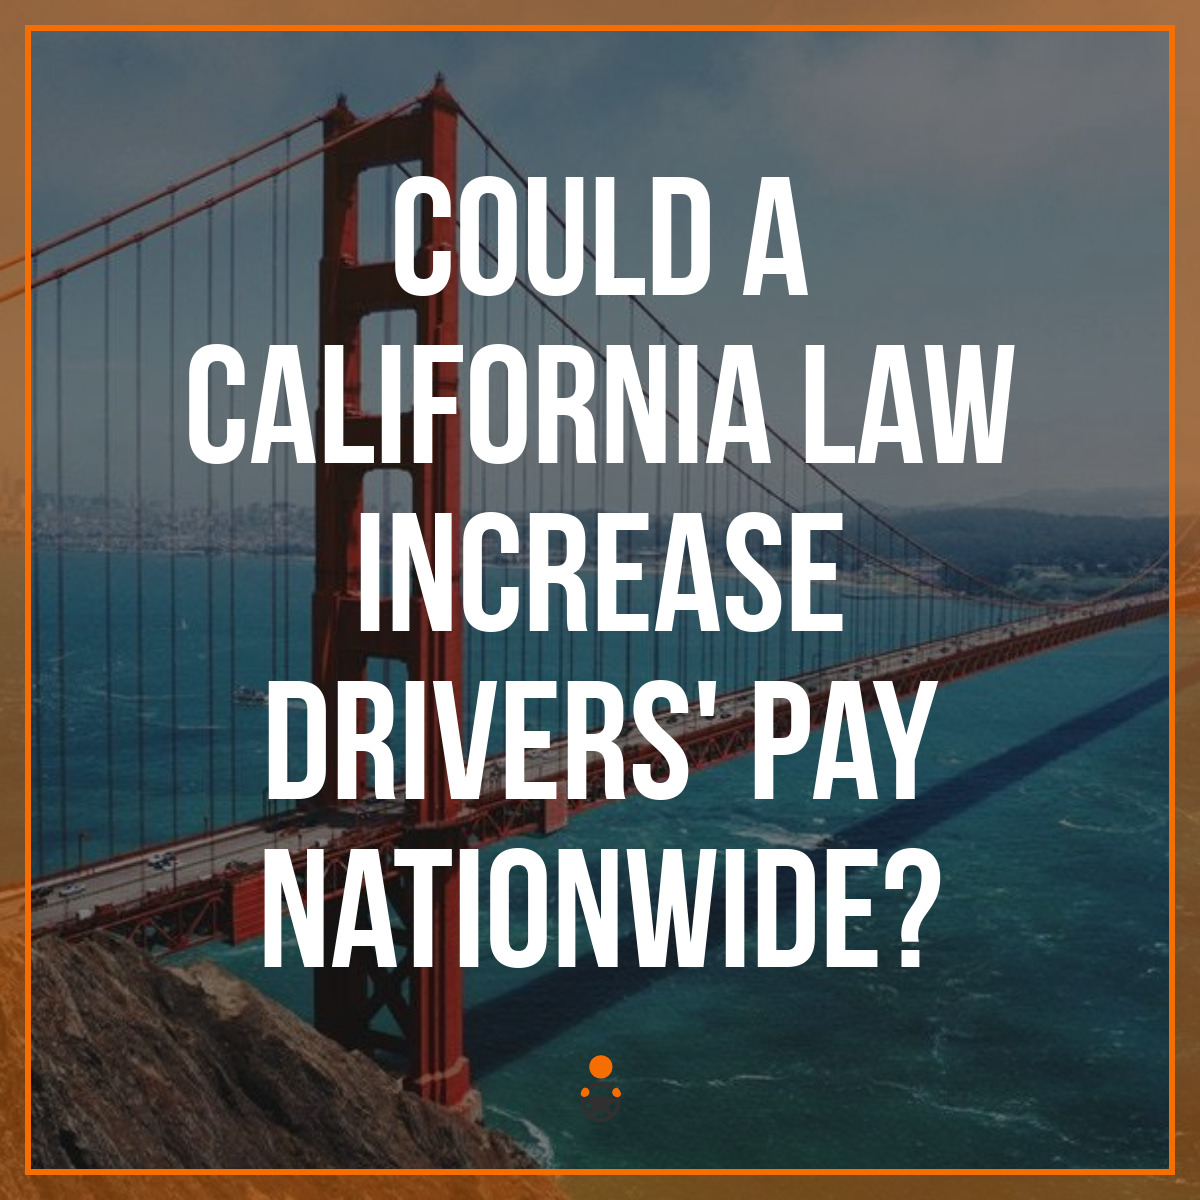 Could a California Law Increase Drivers' Pay Nationwide?